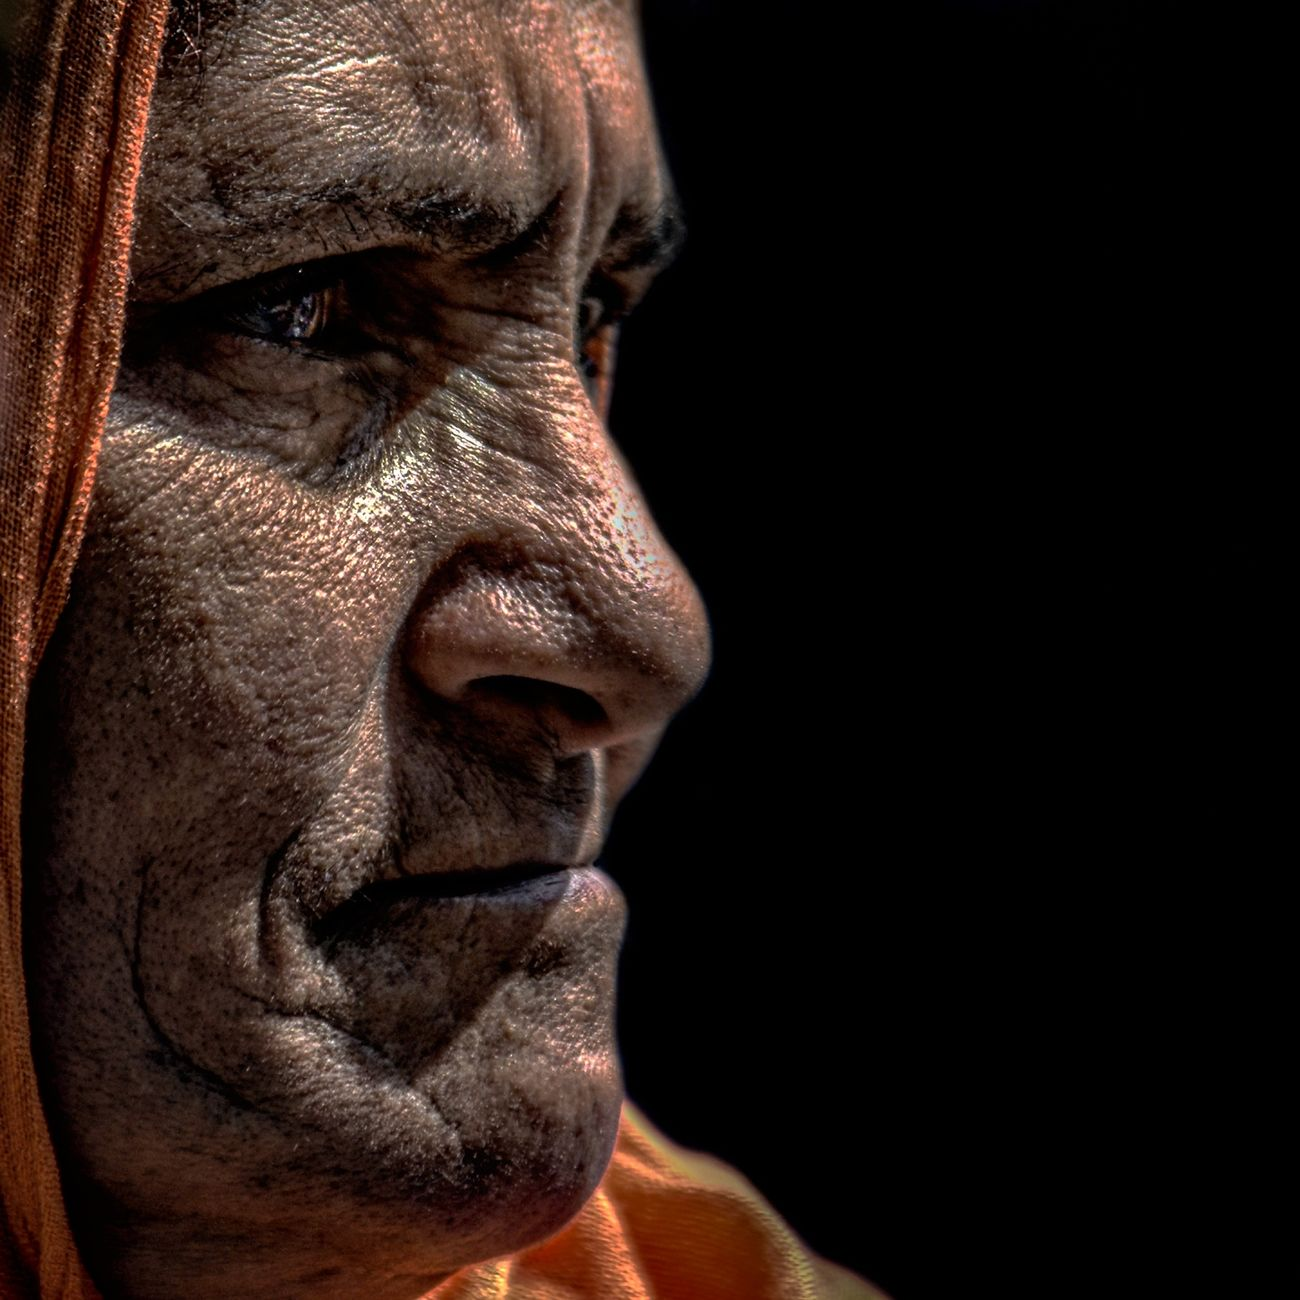 Anonymous portrait... Human Face Adults Only Human Body Part Real People Touching Beauty The Human Condition Street Portrait EyeEm Best Shots Contemplation RePicture Ageing Human Representation Exhibition Center Exhibition Exhibit Art Photographic Photograph Photographer Gallery Visitor Watchers Watch See Look Looking Private Public Blurred Blur Out Of Focus Photography Documentary Reportage Street Mature Adult Human Skin Exhibition Pieces Facial Expression Human Eye Wrinkled Person Adult Streetphotography One Person One Woman Only